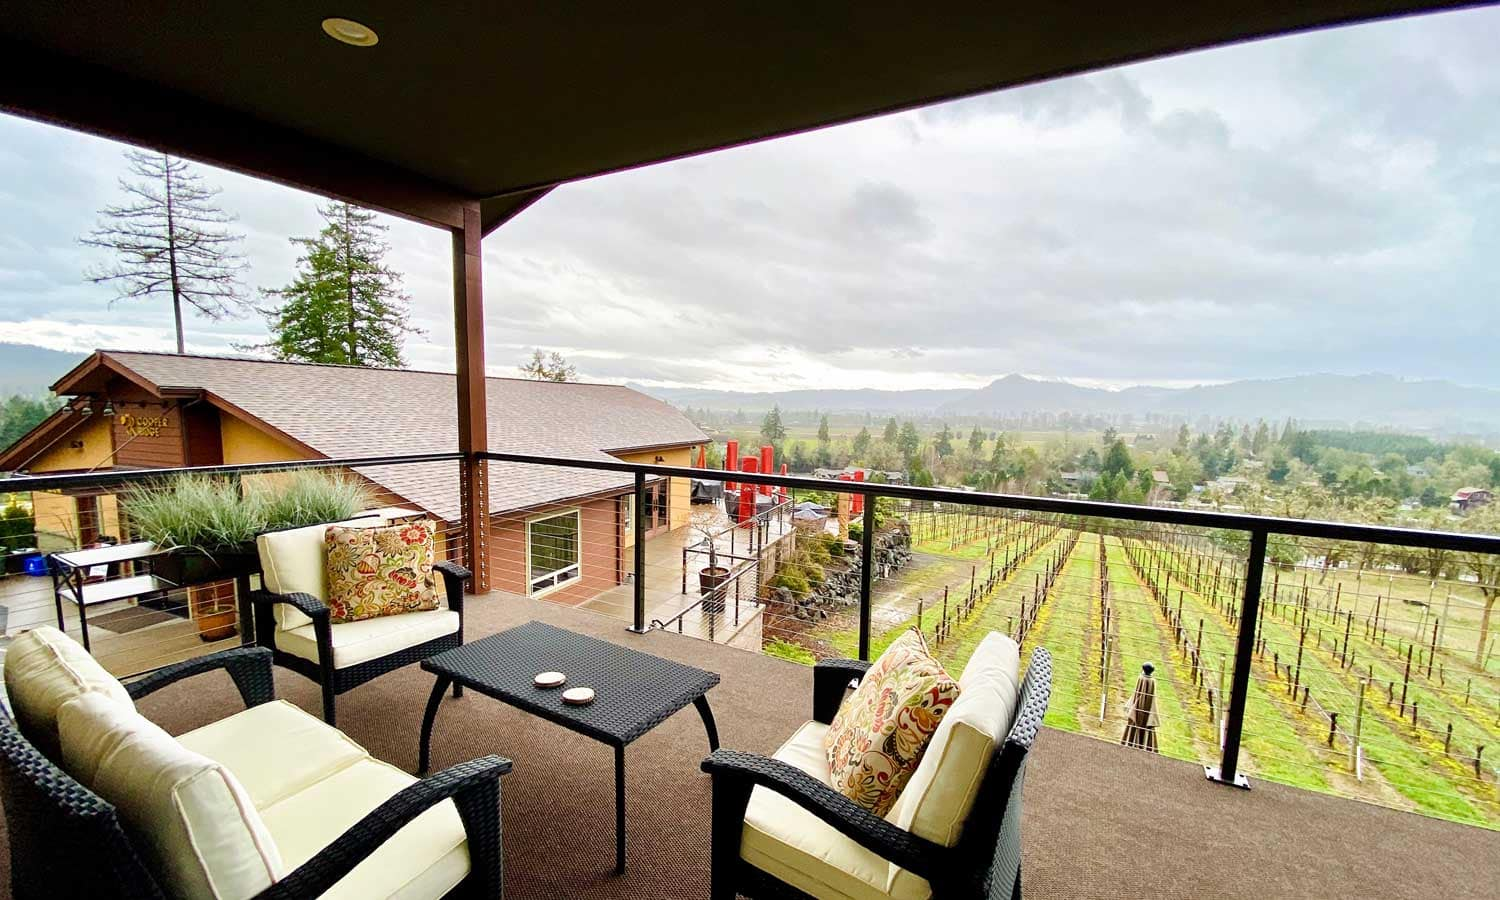 The winery's grapevines can be admired from a second-story balcony.